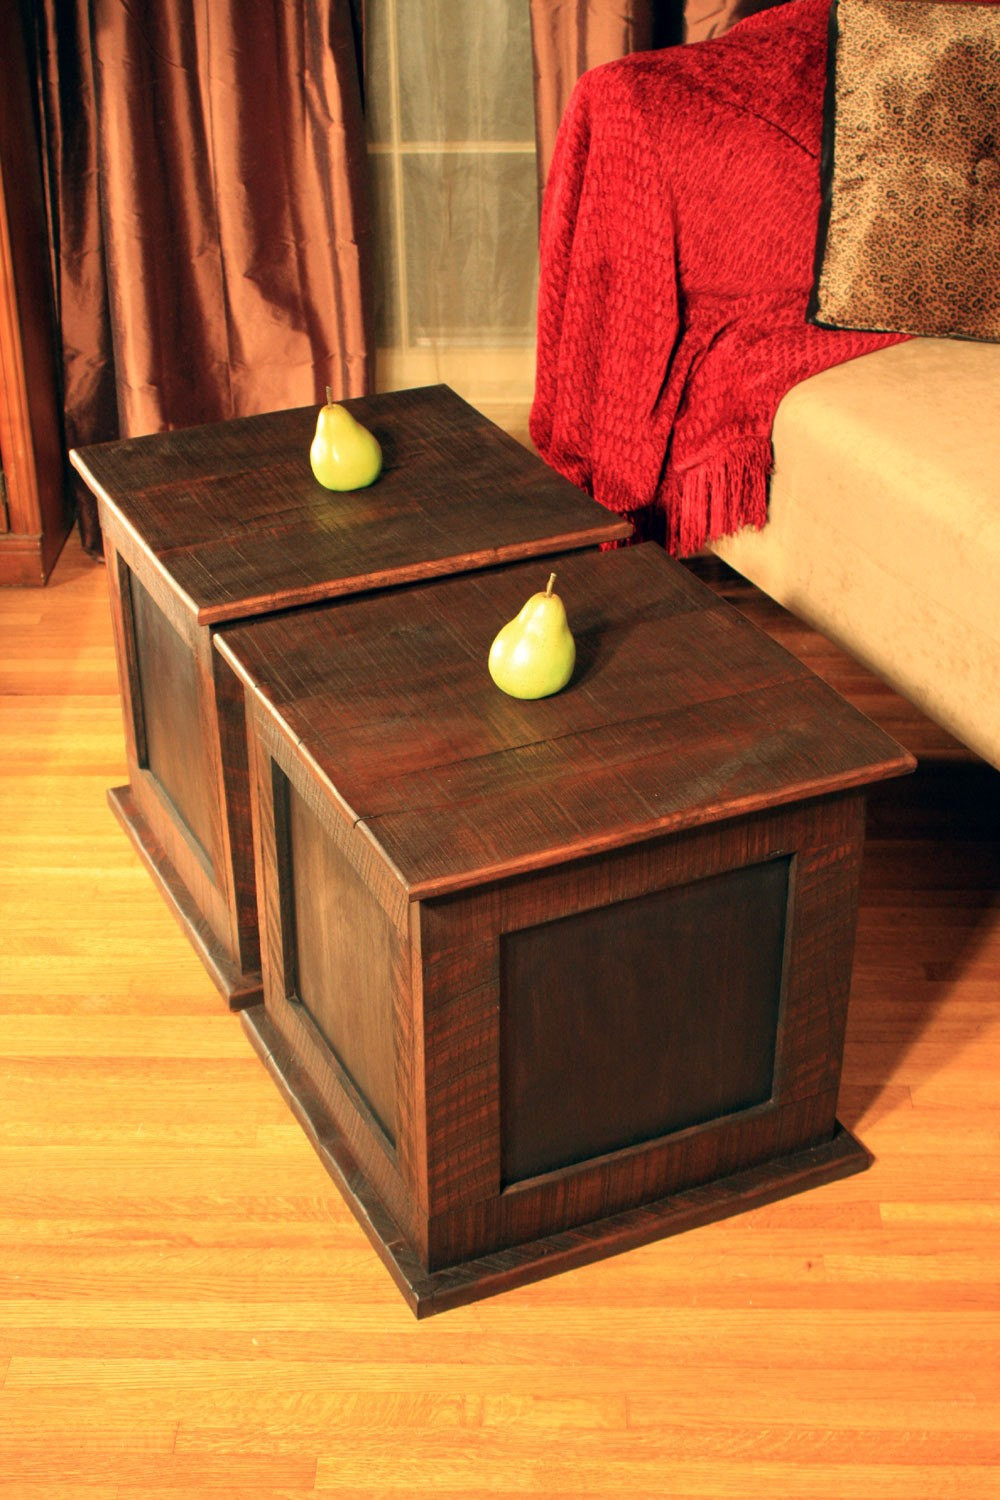 Best ideas about Coffee Table With Storage . Save or Pin Storage Cube Coffee Table Reclaimed Wood Rustic Now.